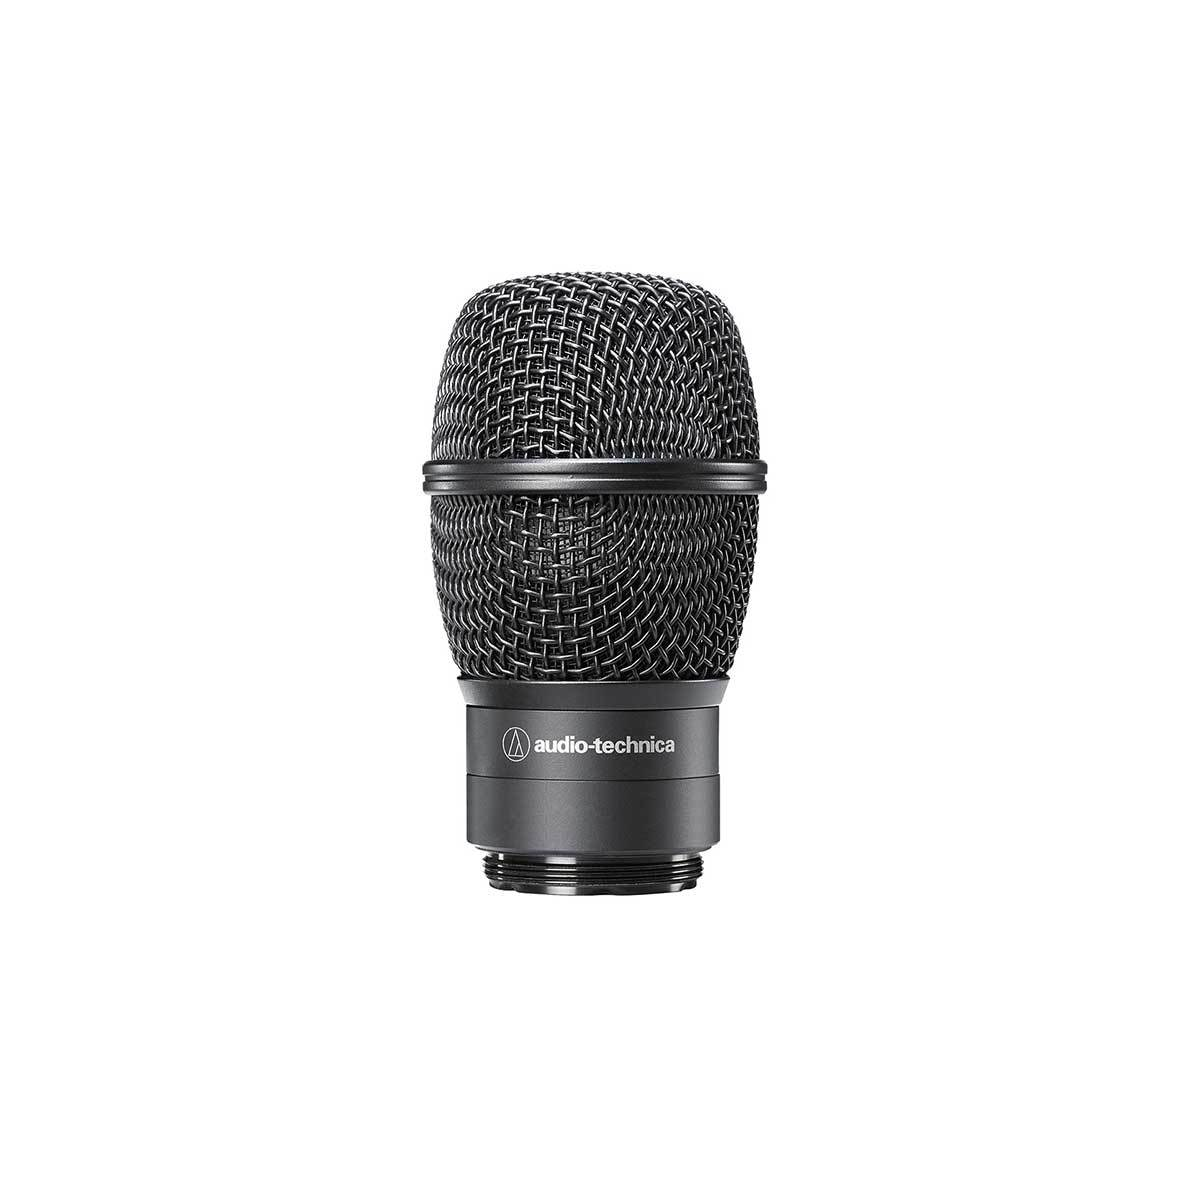 Audio-Technica ATW-3212 Wireless Microphone System with Handheld  Transmitter and Choice of Capsule